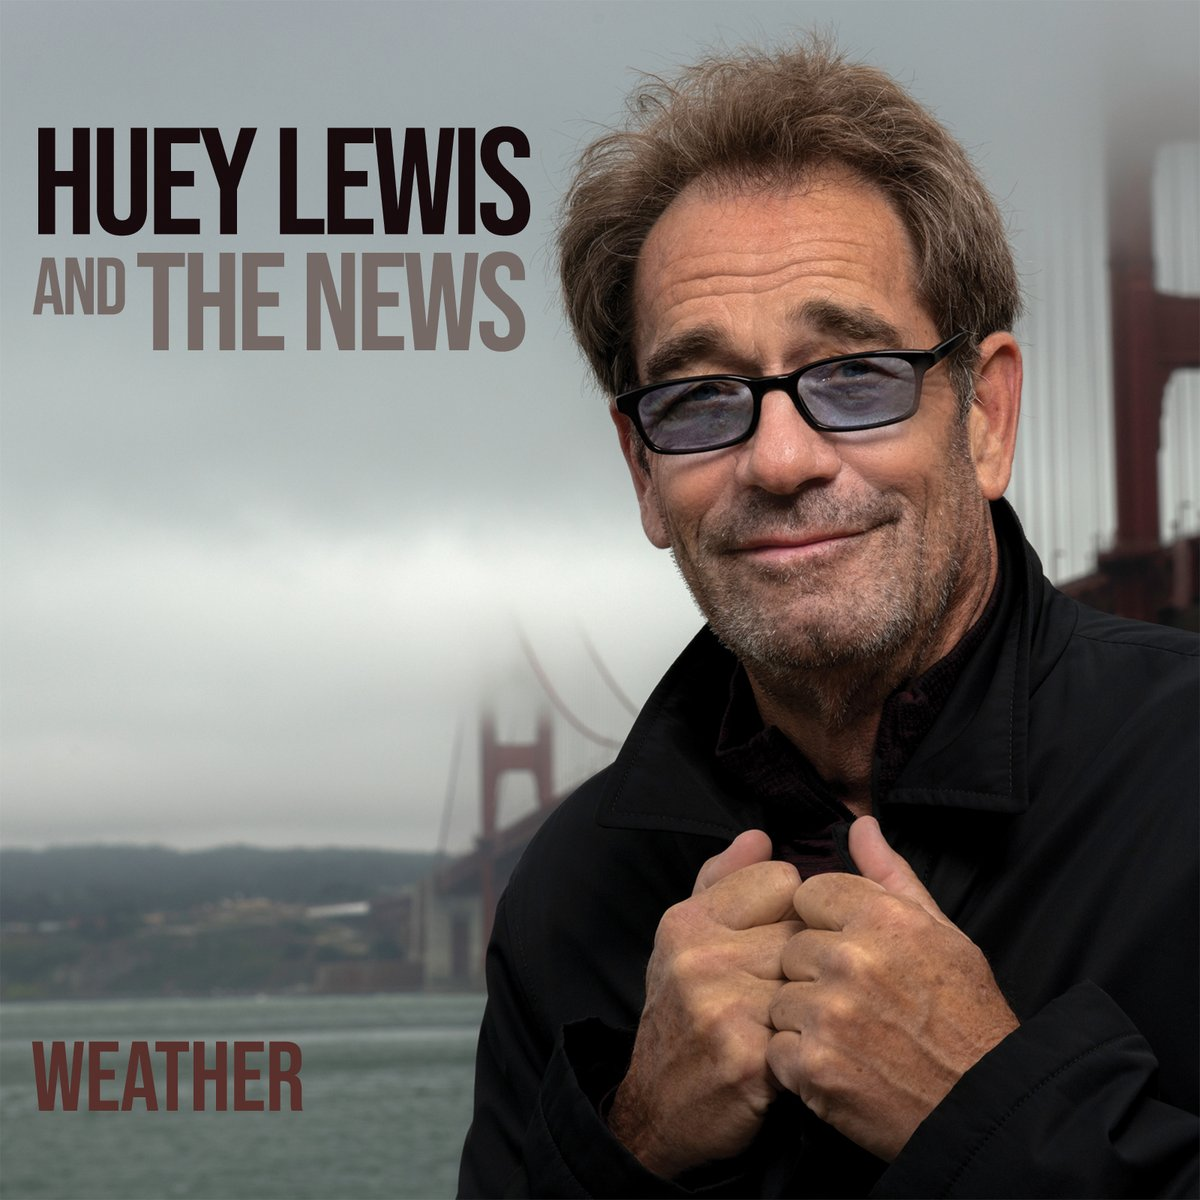 Pre-order your copy of 'Weather' at hueylewisandthenews.lnk.to/weather #hueylewisandthenews